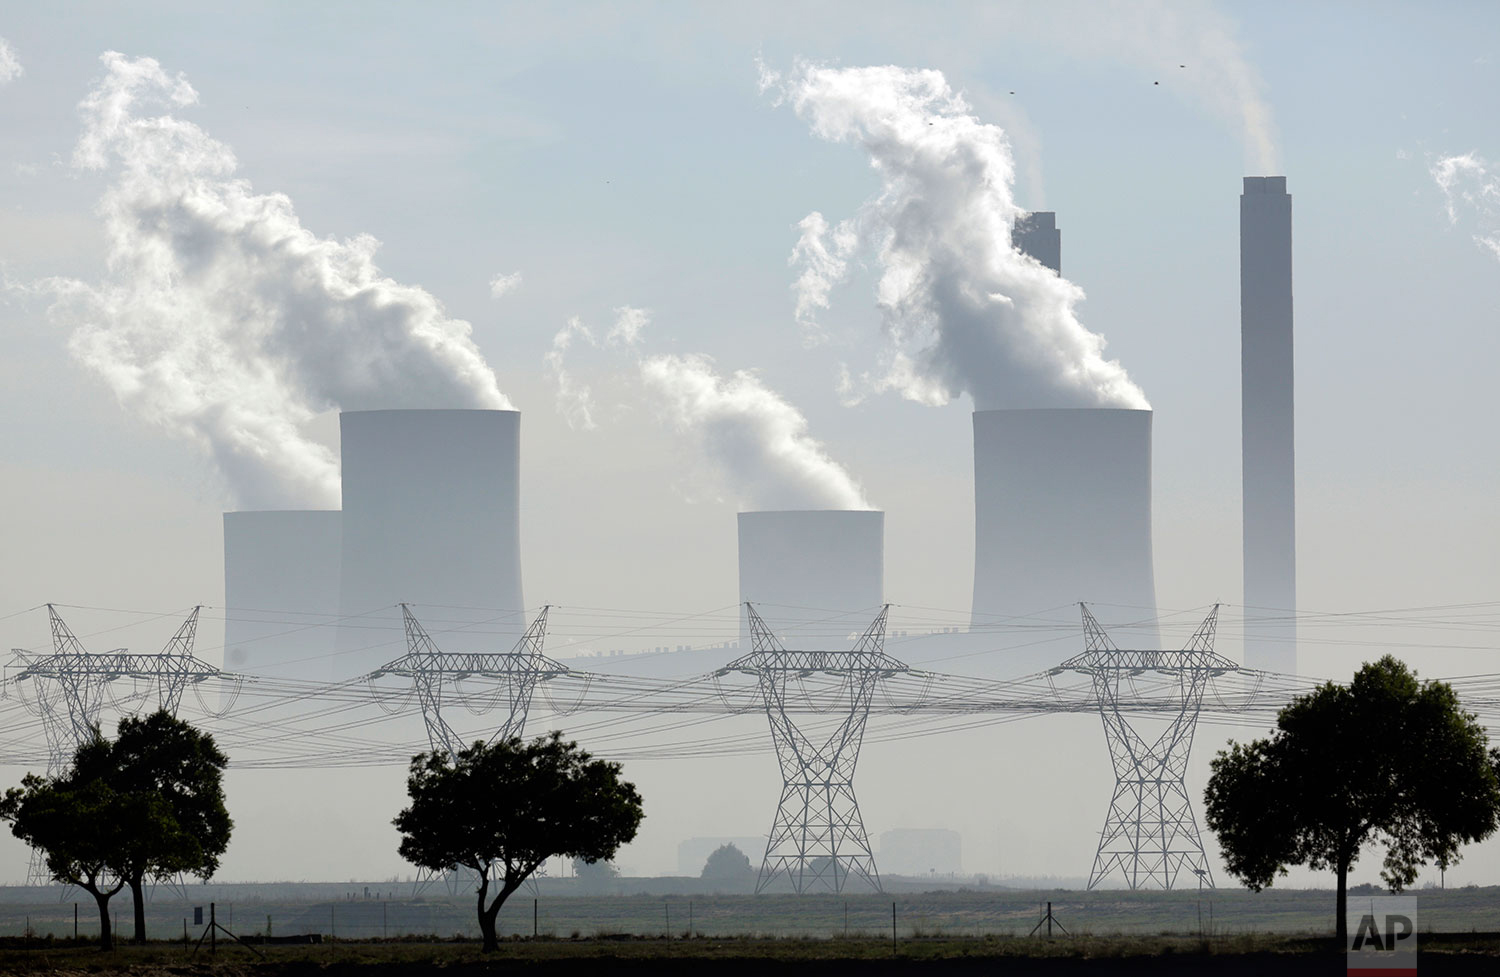 In this Wednesday, Dec. 5, 2018 photo, smoke billows from the chimneys at Lethabo Power Station, a coal fired power station, in Vereeniging, South Africa. (AP Photo/Themba Hadebe)